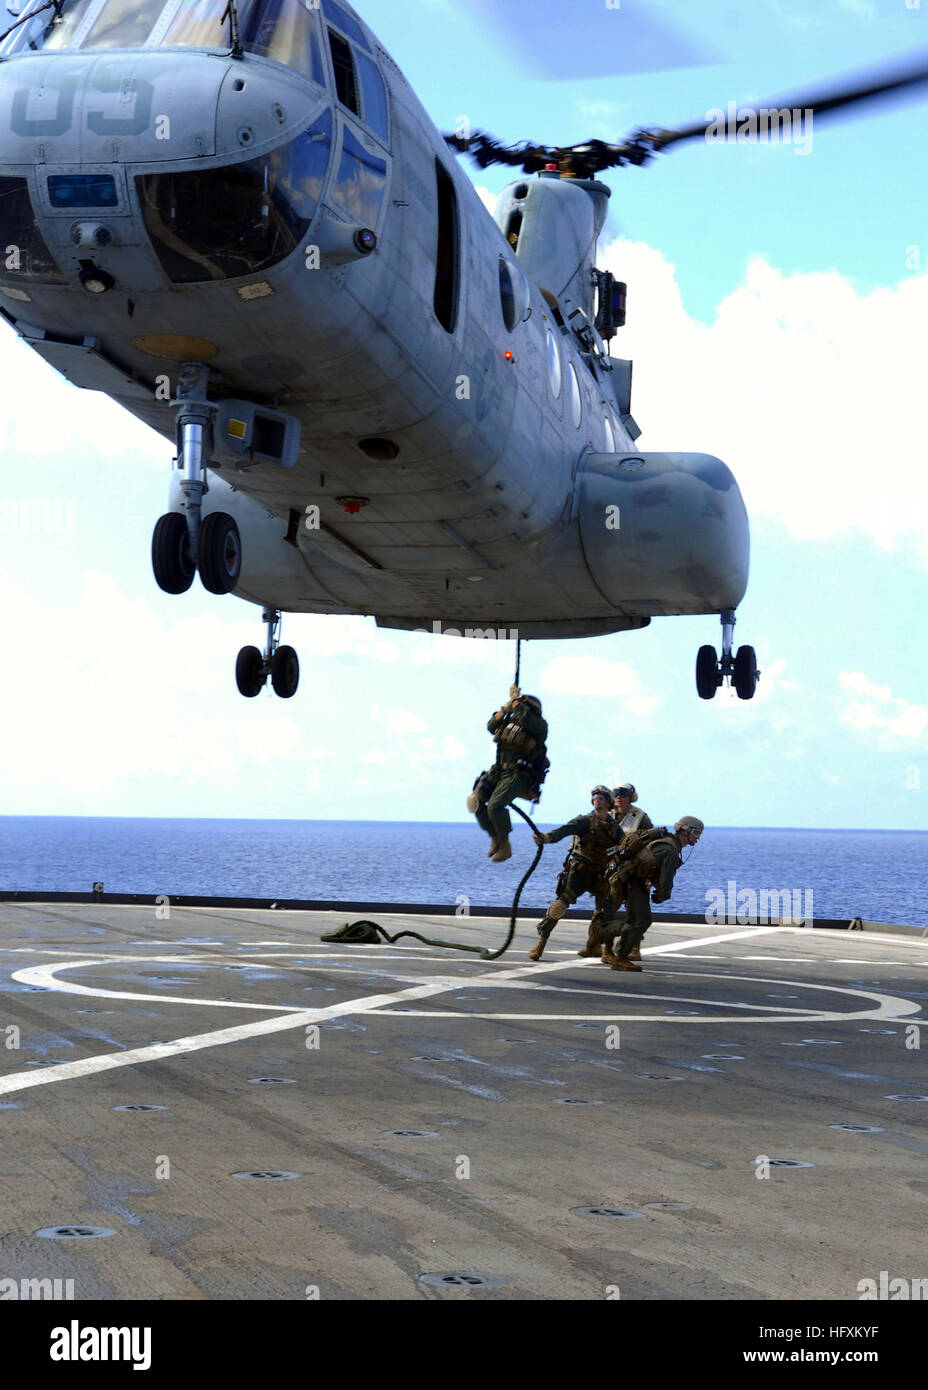 090627-N-6692A-057  PACIFIC OCEAN (June 27, 2009) Marines from the 31st Marine Expeditionary Unit (MEU) fast-rope - Stock Image